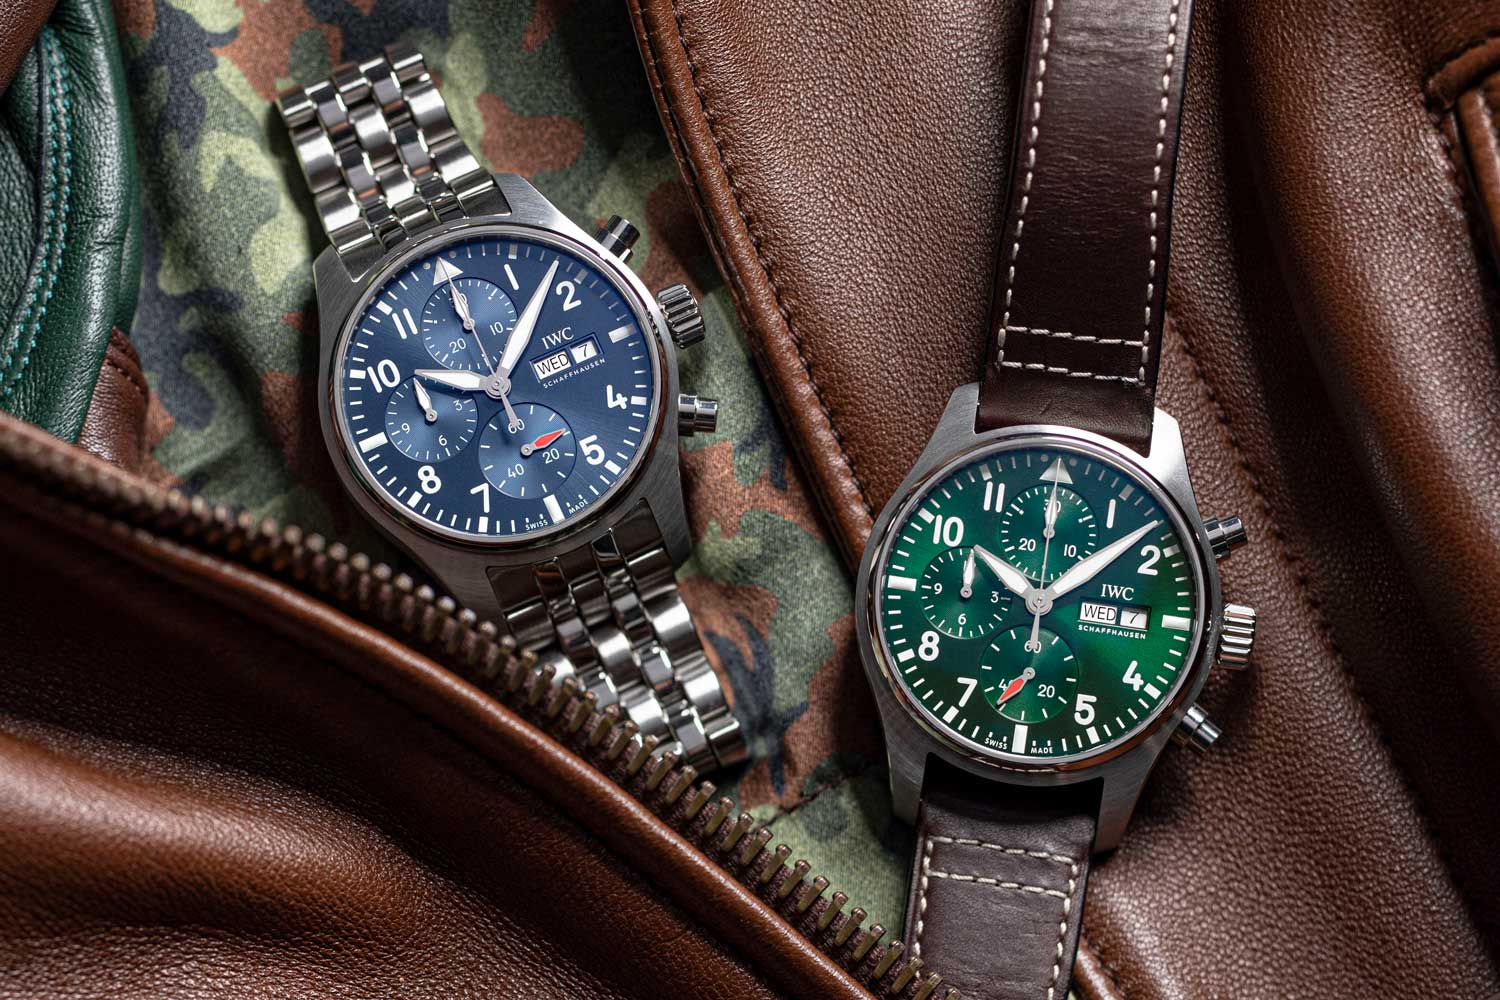 IWC Pilot's Watch Chronograph 41 is offered with a blue or green dial, has rhodium plated hands and highly-legible white numeral and minutes track designs.(Image: Revolution)